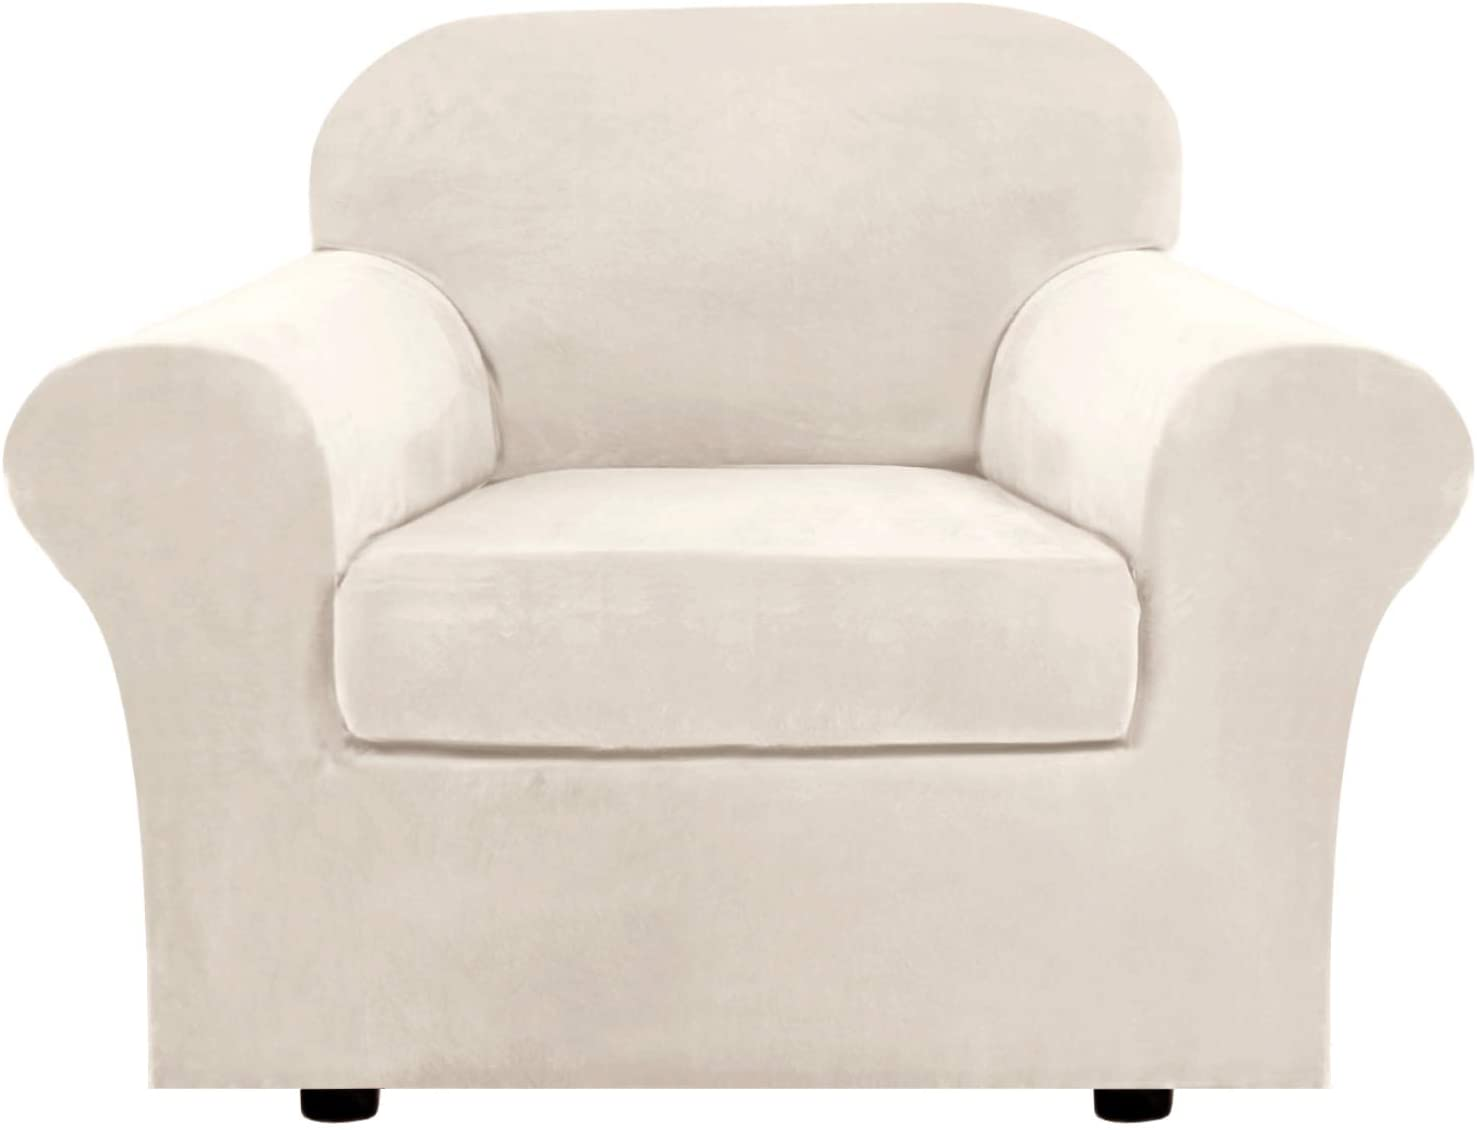 H.VERSAILTEX Rich Velvet Stretch 2 Piece Chair Cover Chair Slipcover Sofa Cover Furniture Protector Couch Soft with Elastic Bottom Chair Couch Cover with Arms, Machine Washable(Chair, Ivory)